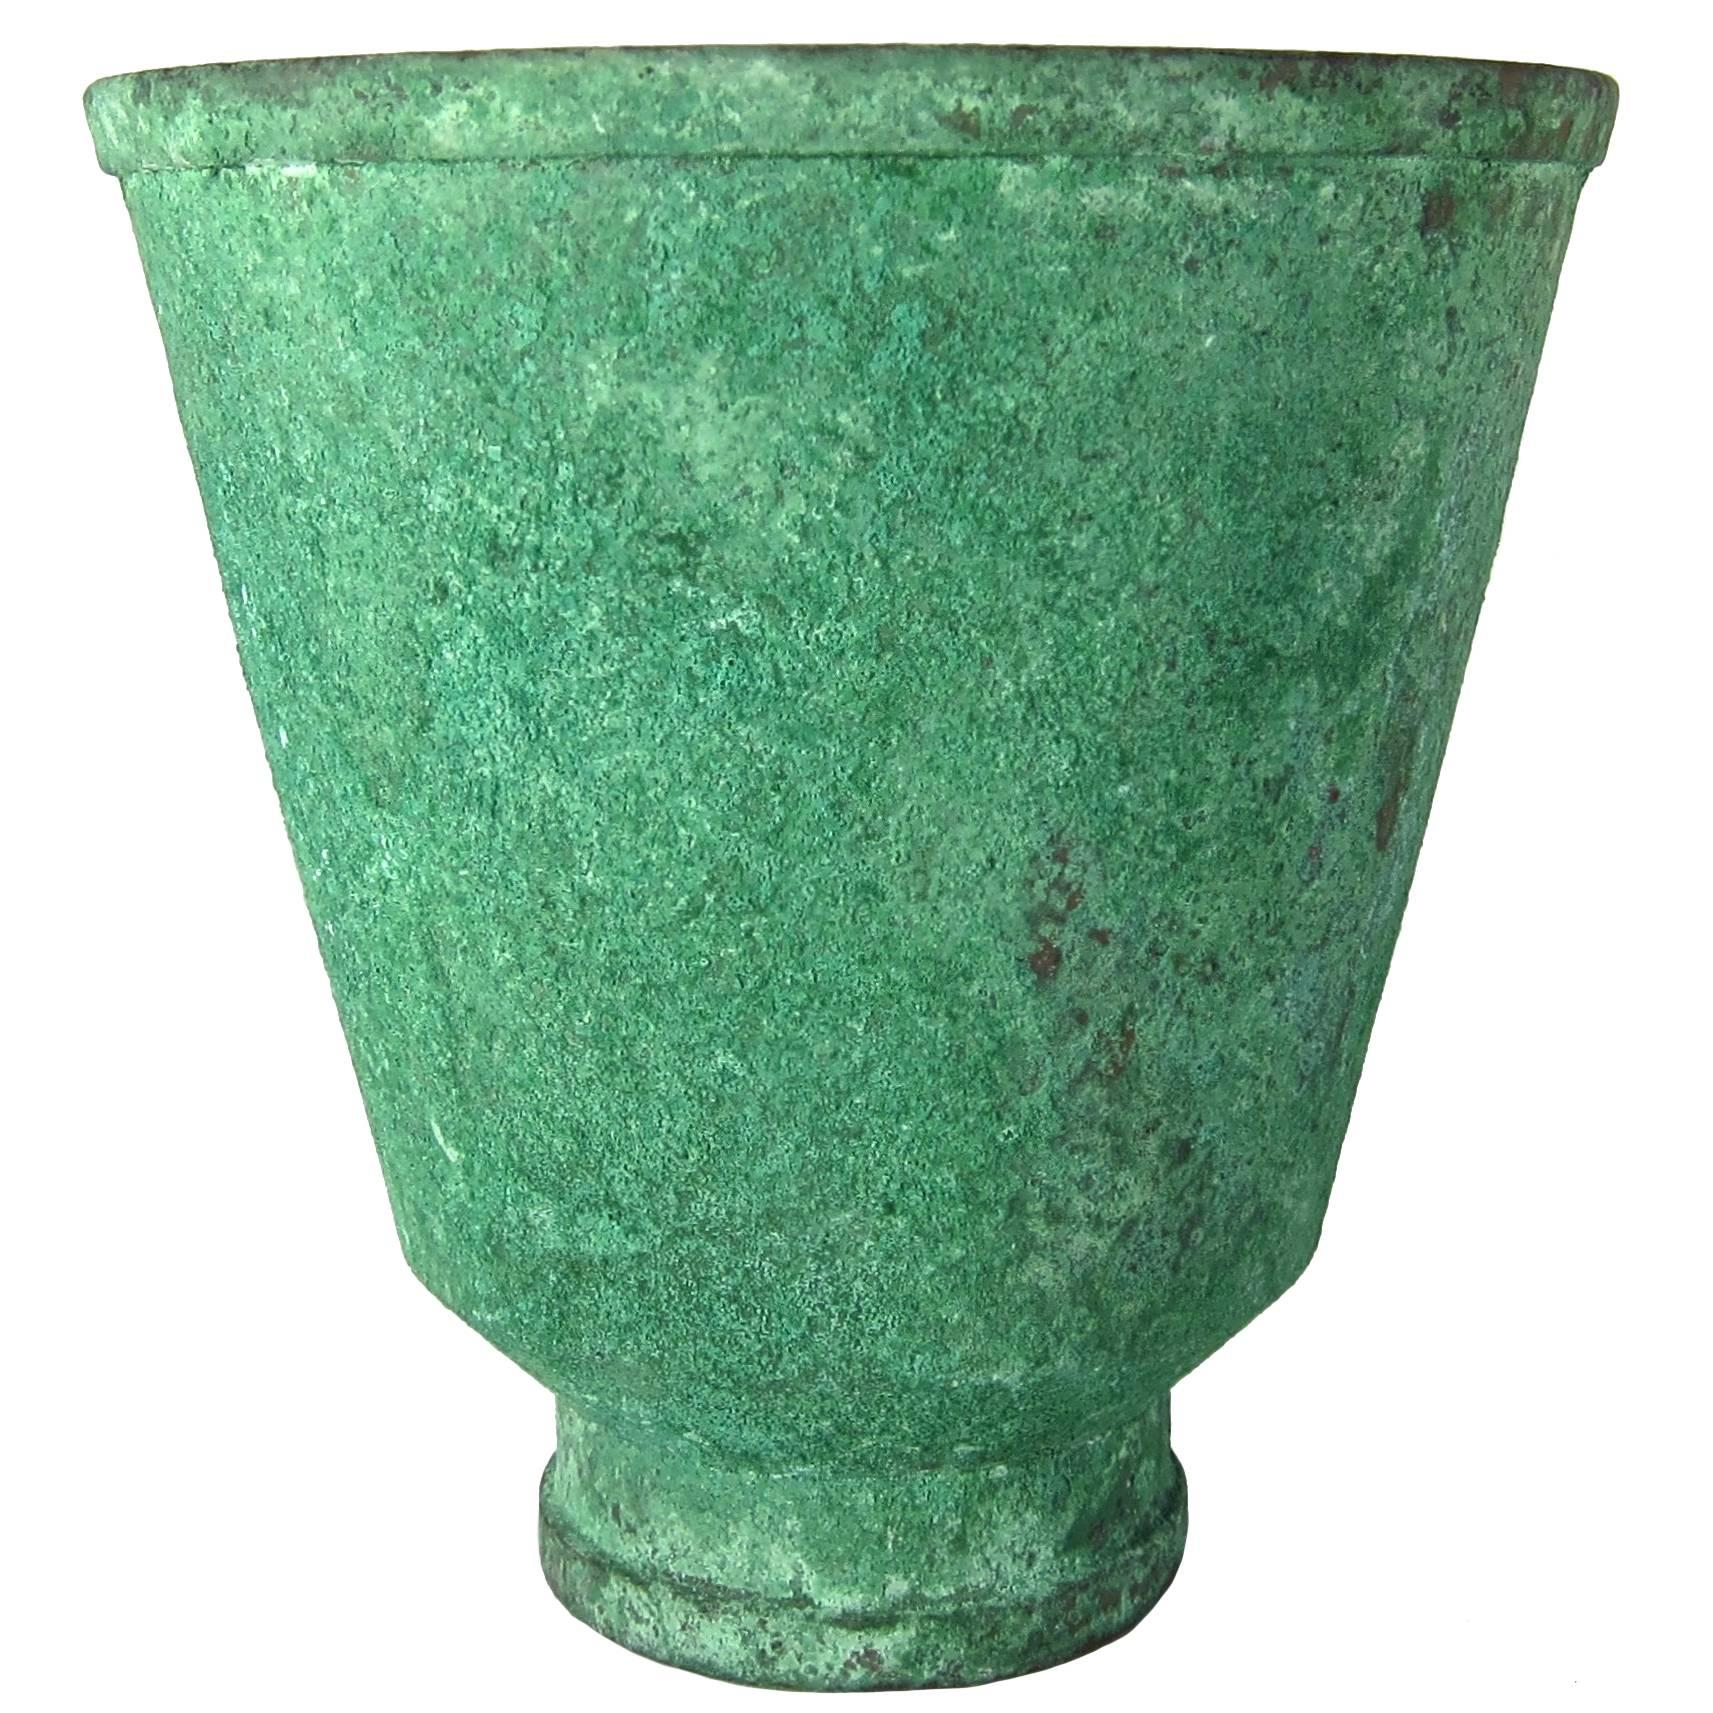 Marie Zimmermann American Arts & Crafts Vase with Encrusted Green Patina